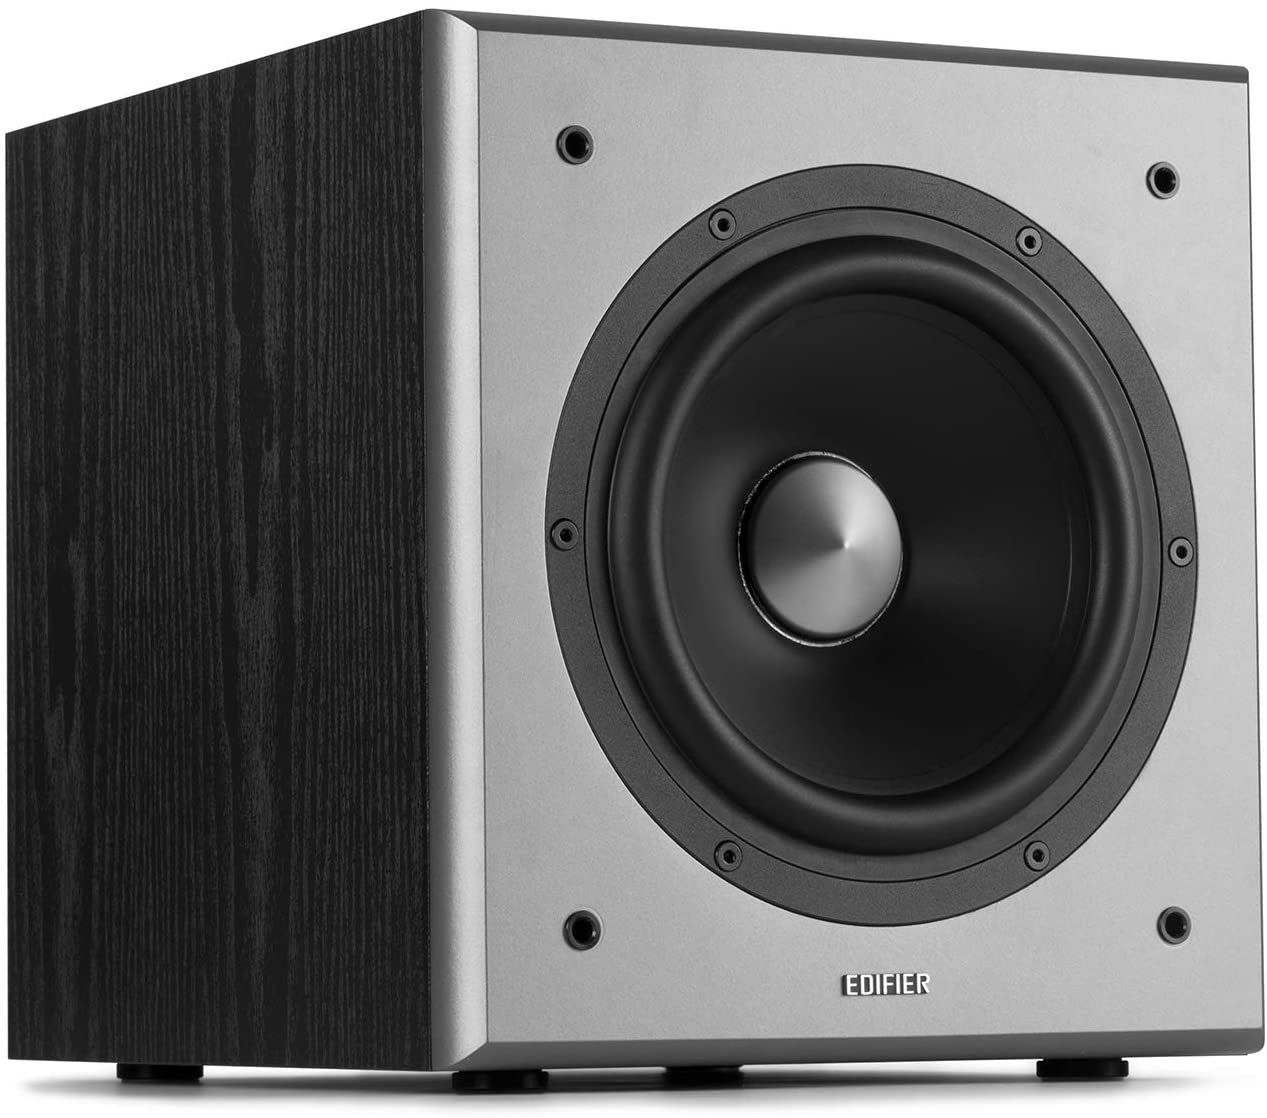 Edifier Announce New T5 POWERED SUBWOOFER